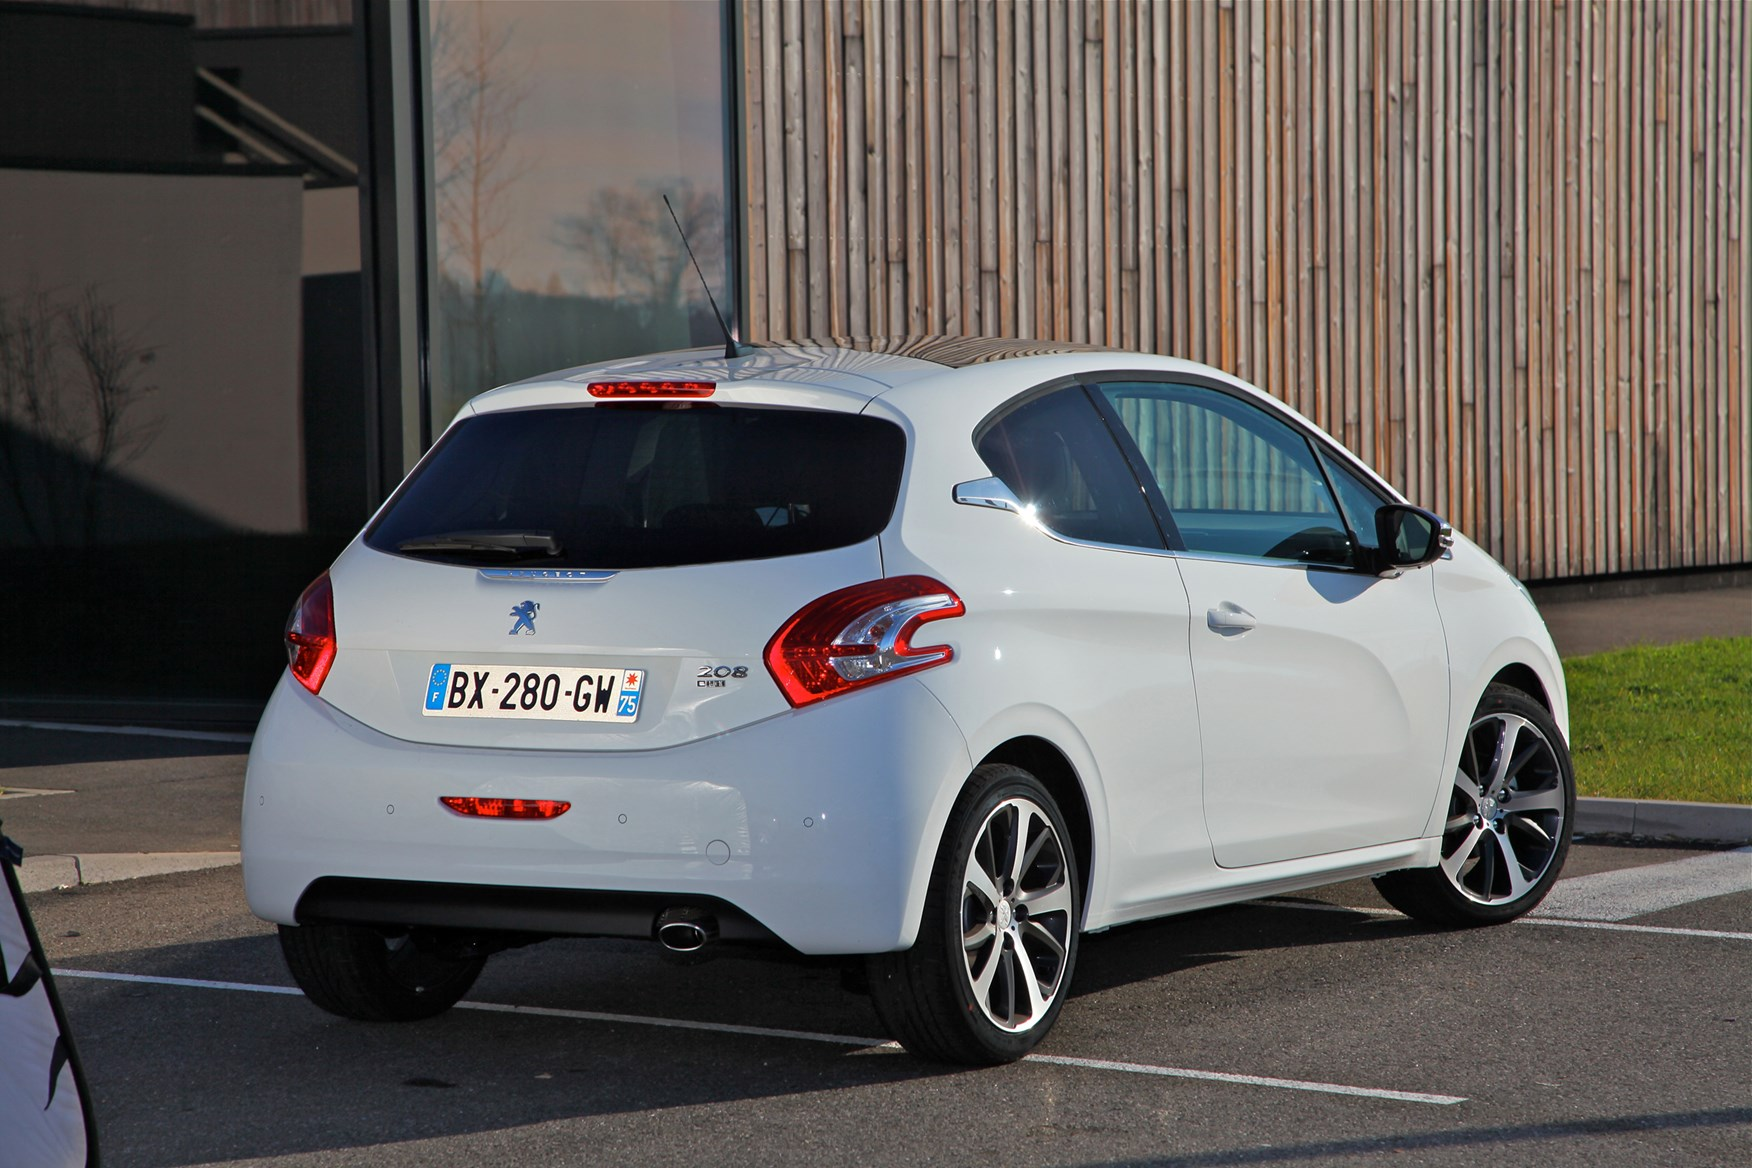 peugeot 208 hatchback 2012 features equipment and accessories parkers. Black Bedroom Furniture Sets. Home Design Ideas